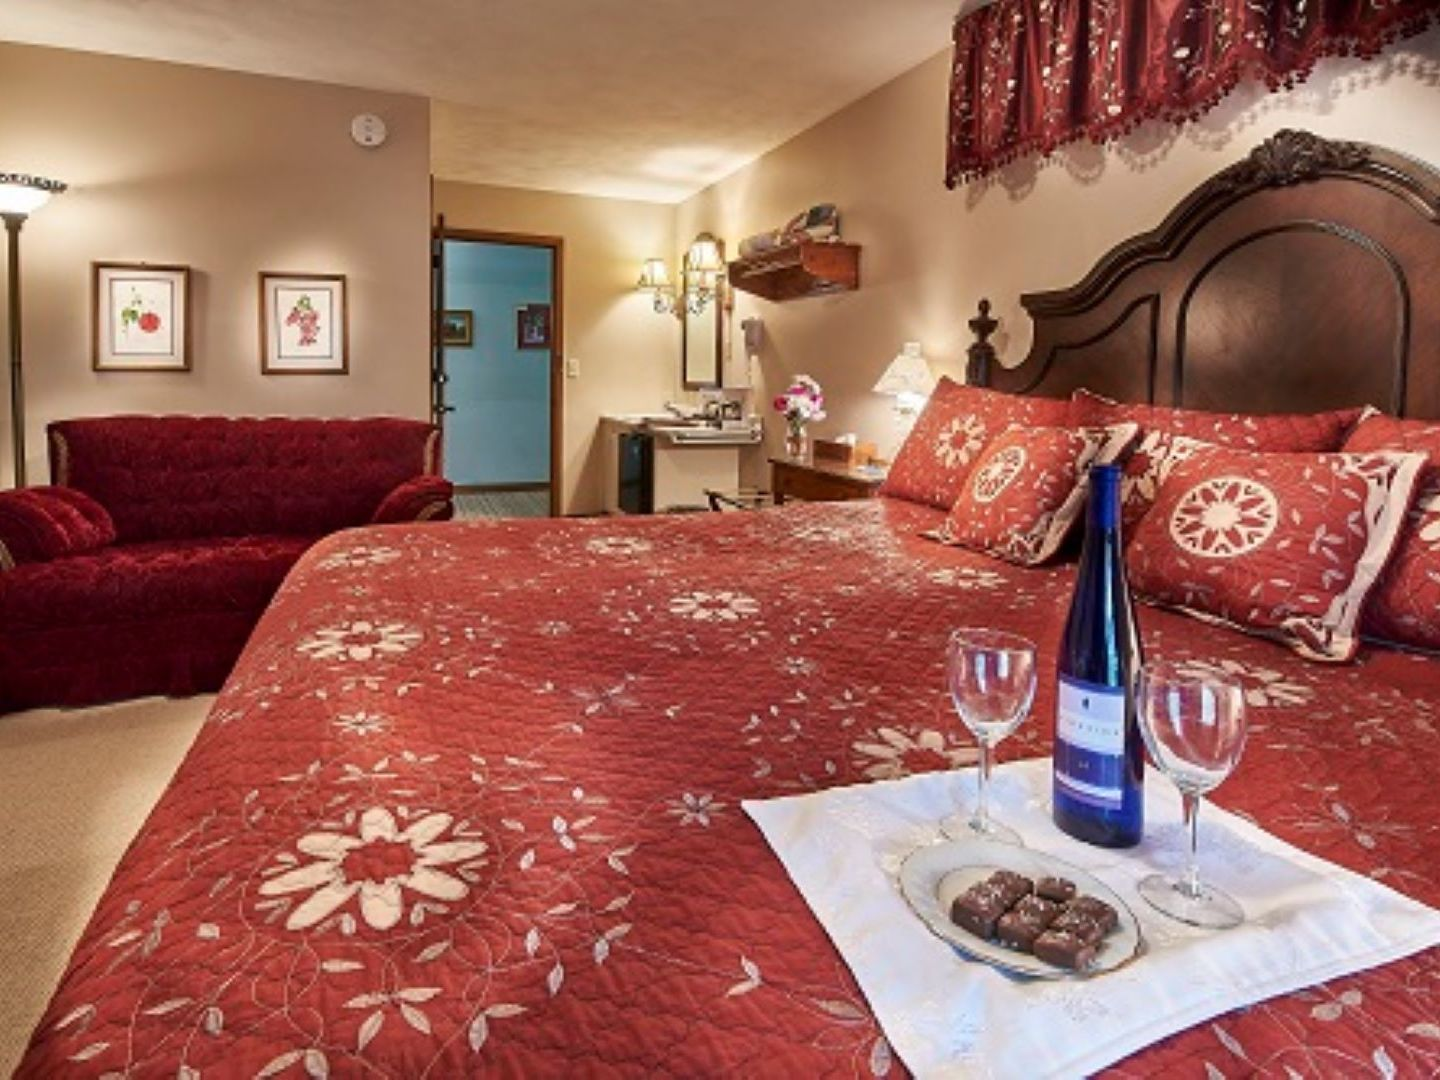 A bedroom with a glass of red wine on a table at Die Heimat Country Inn.